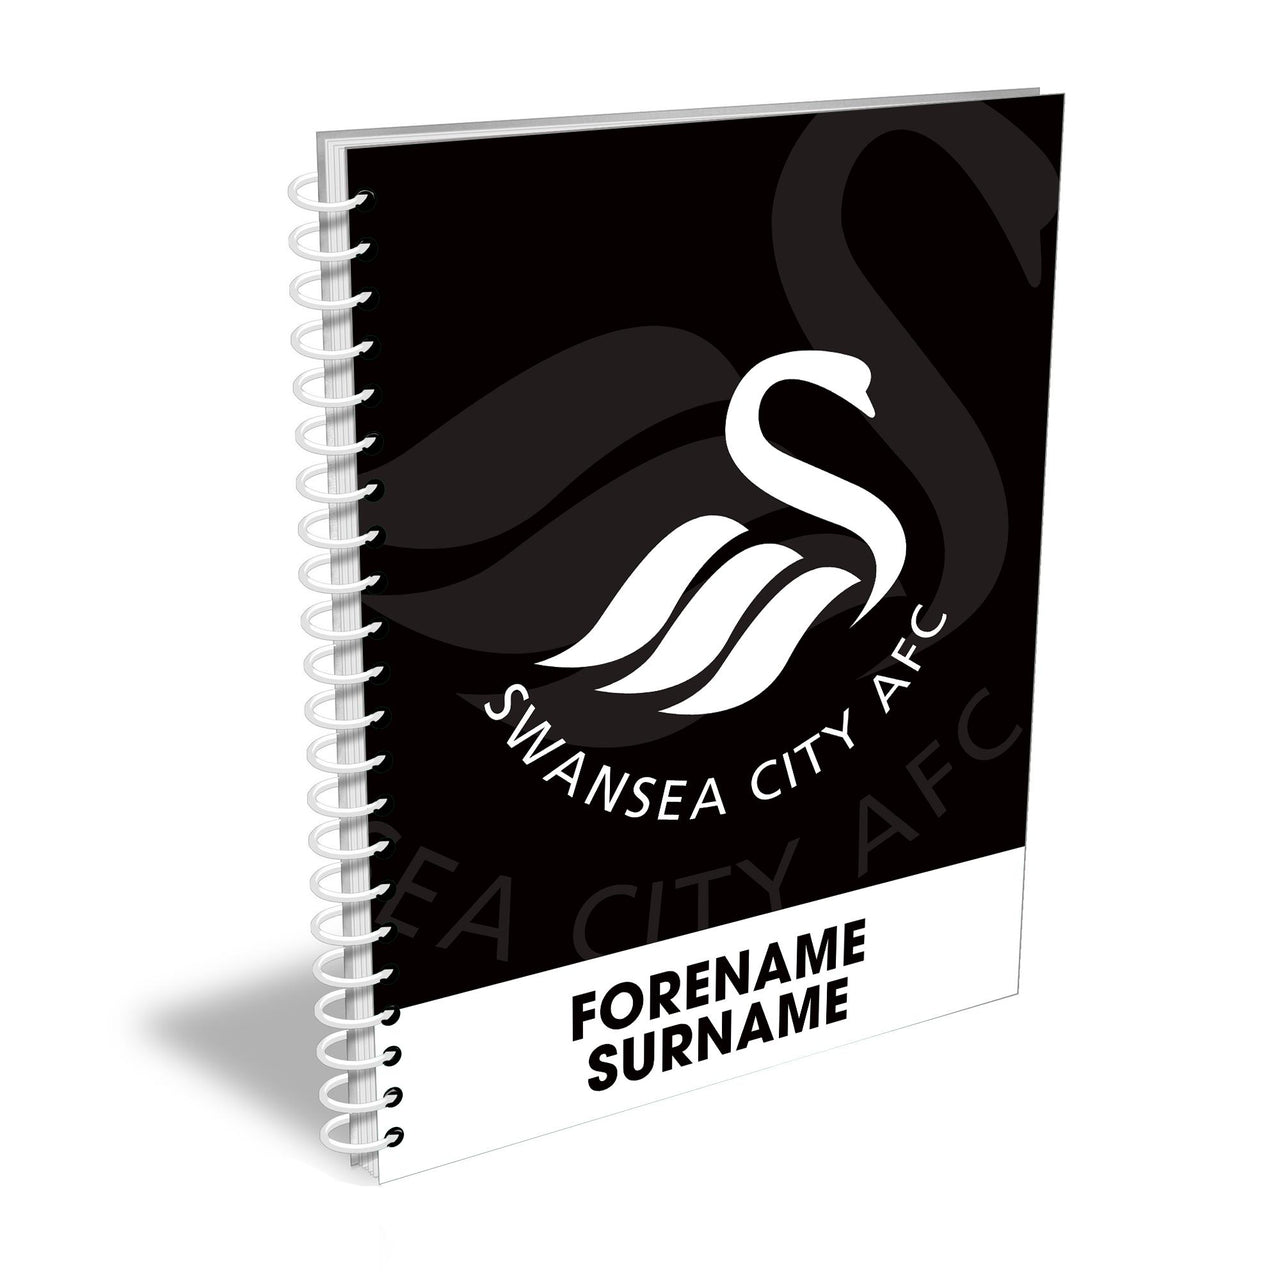 Swansea City AFC Bold Crest Notebook